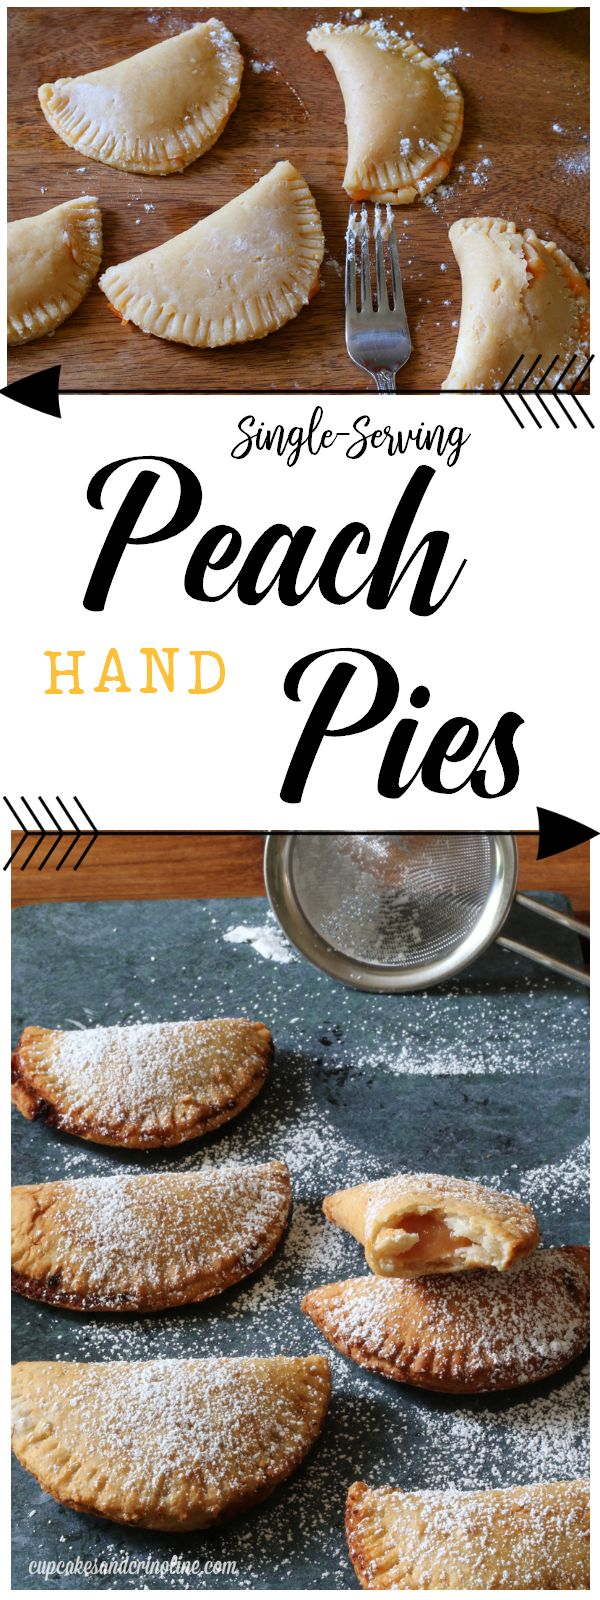 Peach pie - small hand pies before baking and then after baking sprinkled with powdered sugar.